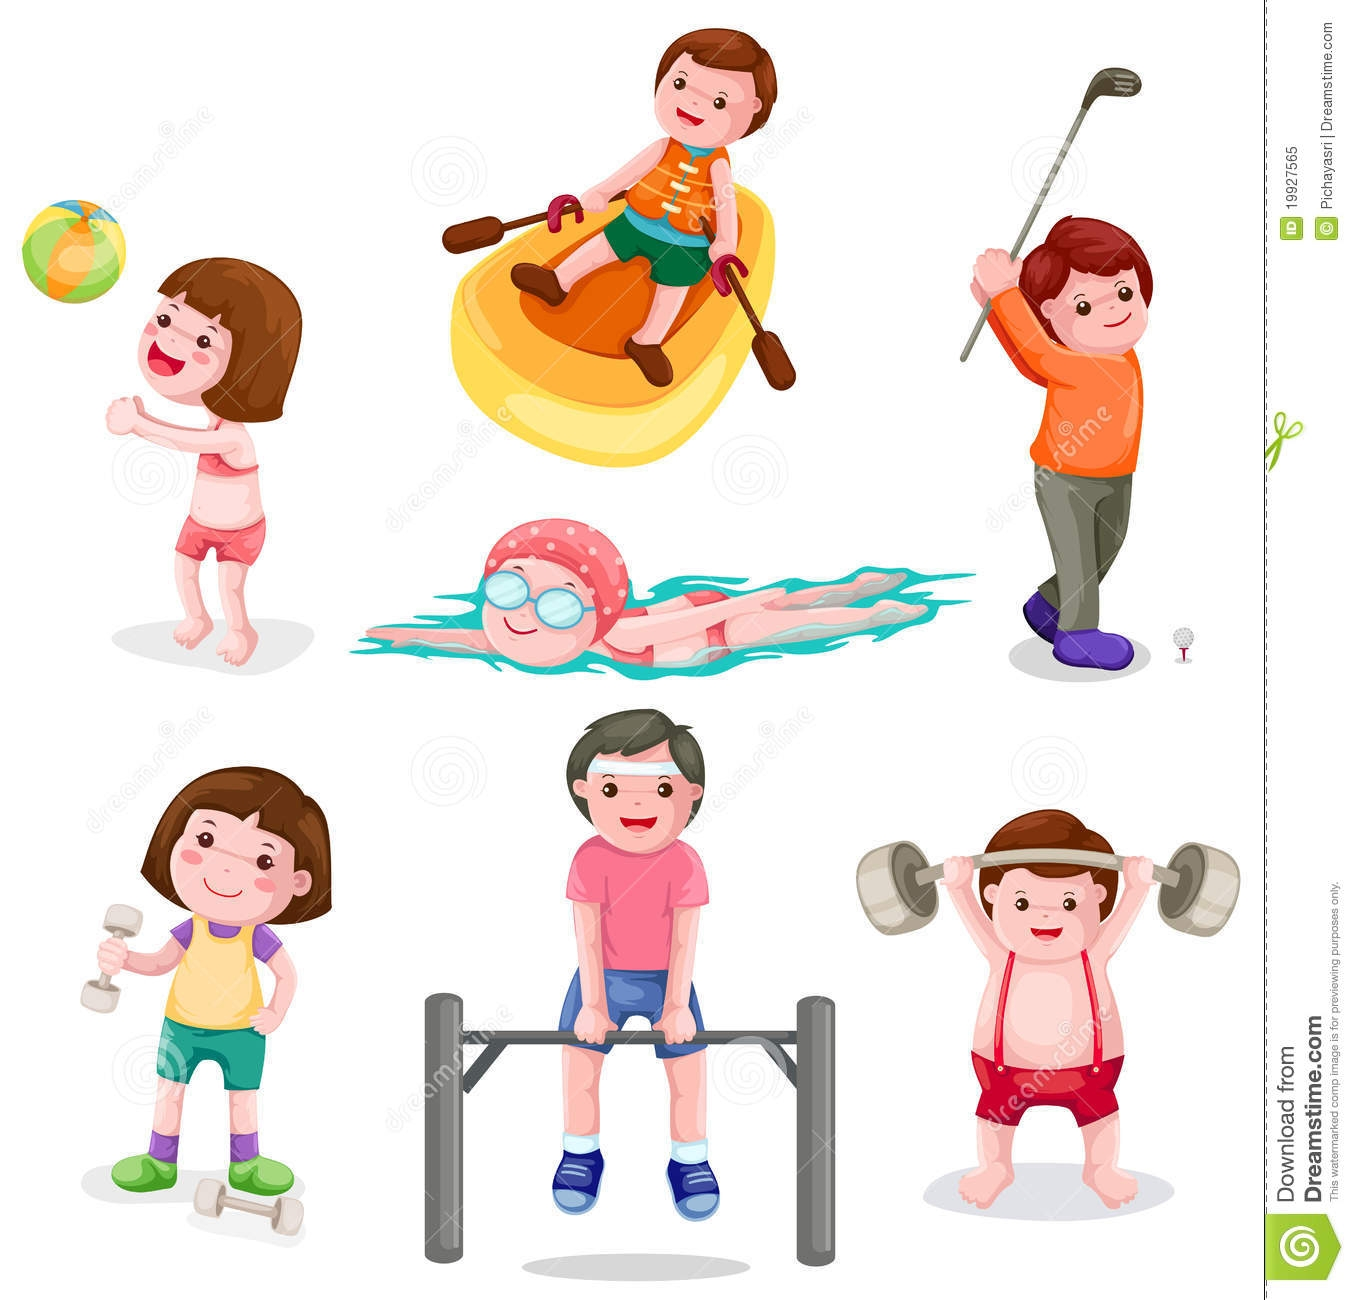 Clipart exercise regular exercise. Images free download best